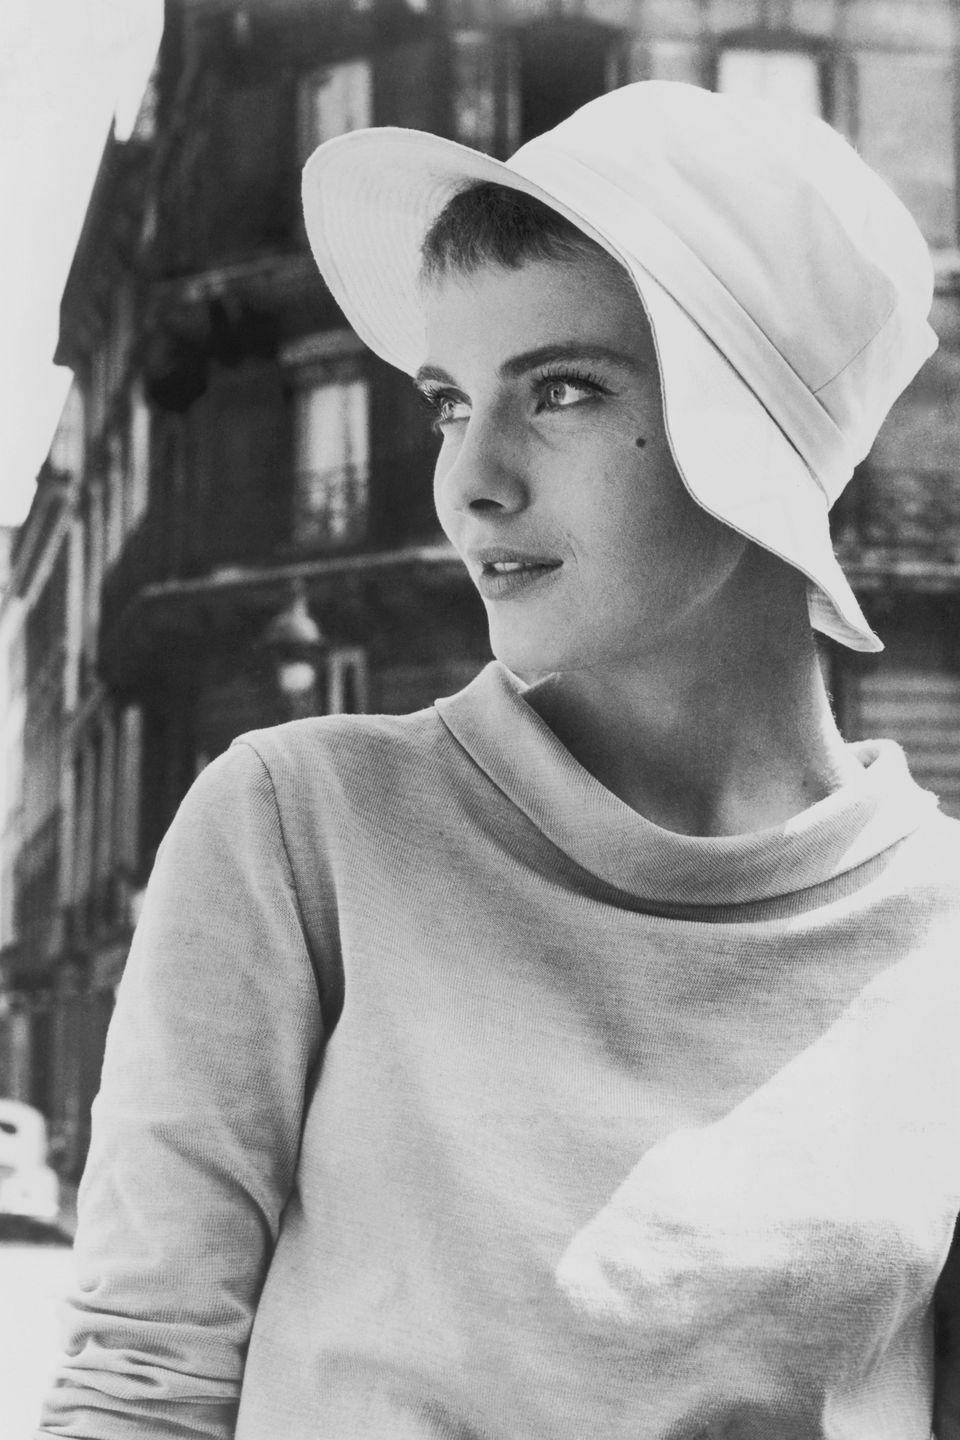 <p>Jean Seberg first found fame in Jean-Luc Godard's iconic film Breathless, which cemented her role as the face of French New Wave cinema. A few years later, she became disenchanted with the film world, and became involved with the Black Panther Party in the US. Once the FBI got wind of her support of the Black Panthers, they began a successful campaign in intimidating and harassing Seberg, culminating in the creation of a fake news story which was instrumental in the actress' eventual breakdown. The widely-publicised article claimed that she was pregnant not with her husband's child, but the baby of a member of the Black Panthers. Due to stress, Seberg went into early labour and the baby girl died two days later. Nine years after the death of her child, Seberg took her own life. </p>